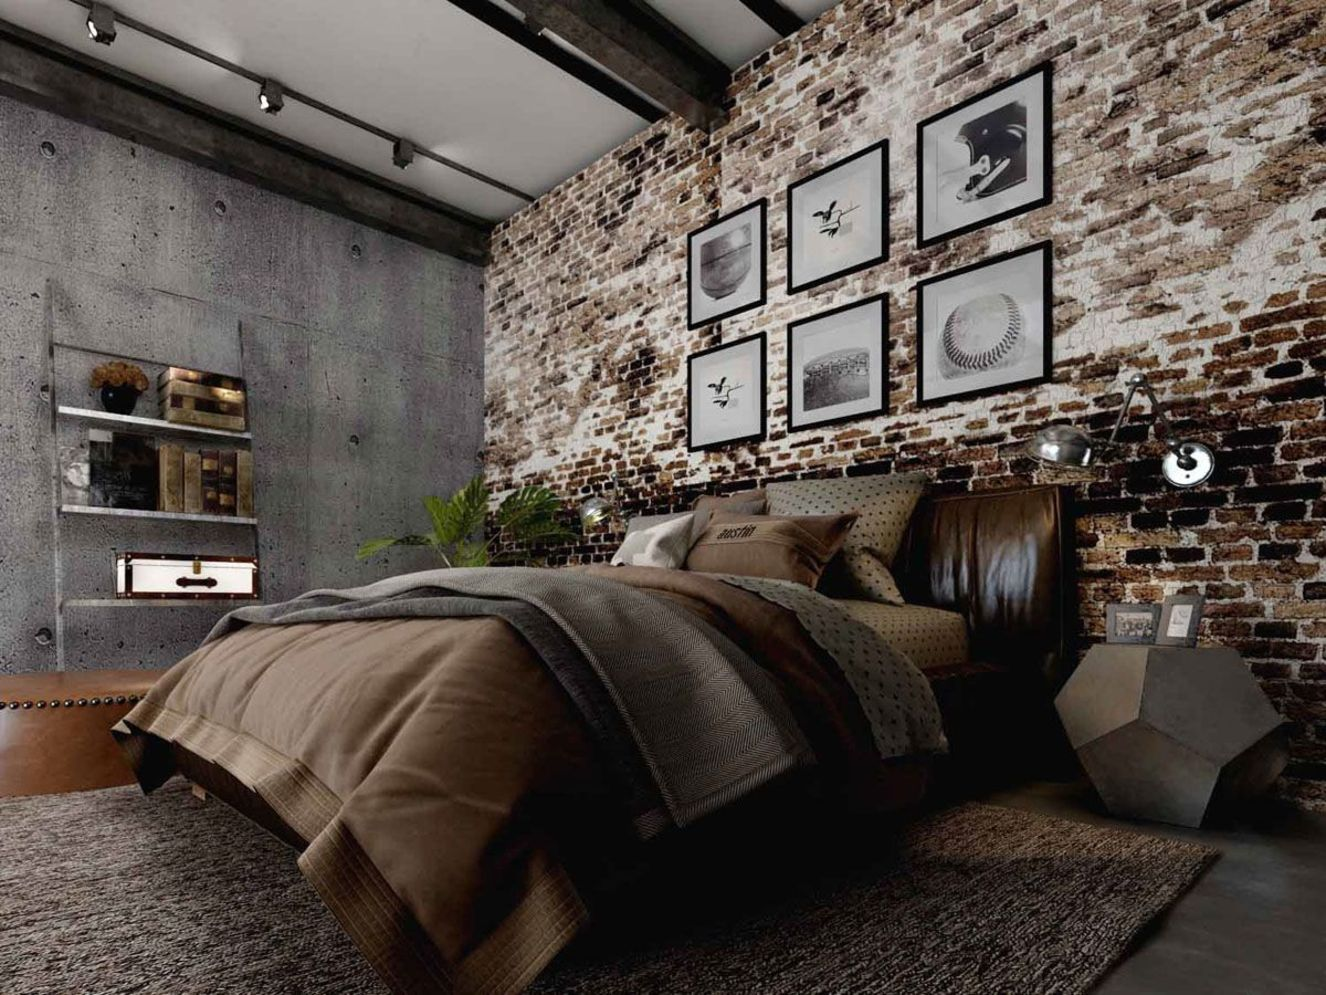 Wonderful interior statement brick wall improving interior display with modern rustic combination Image 43